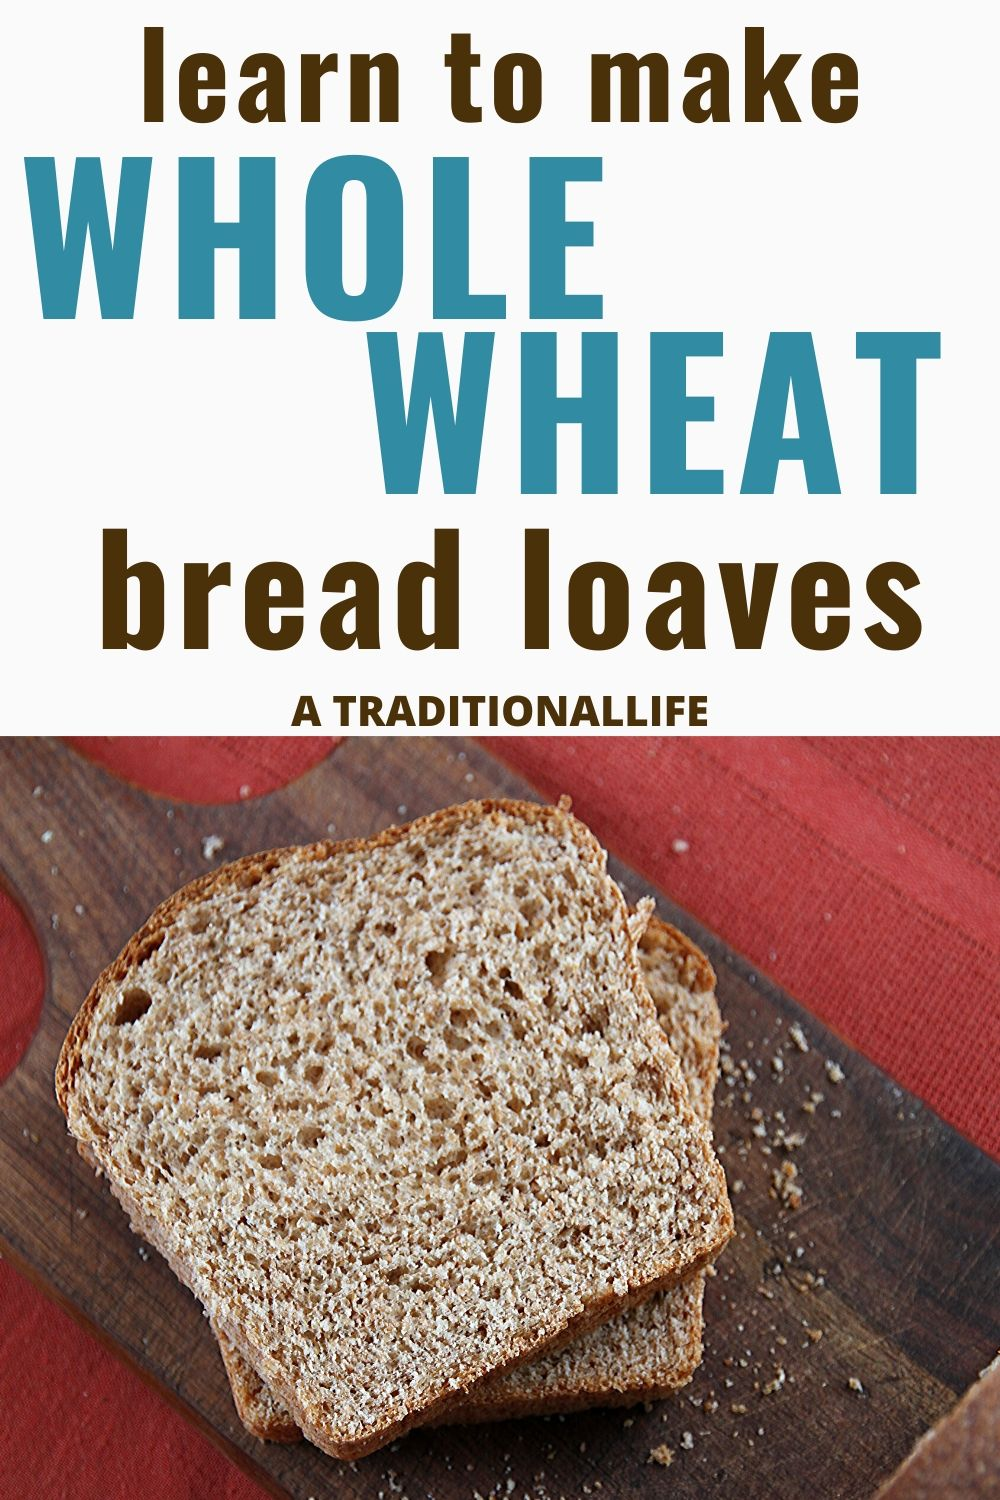 Make whole wheat bread by following this recipe